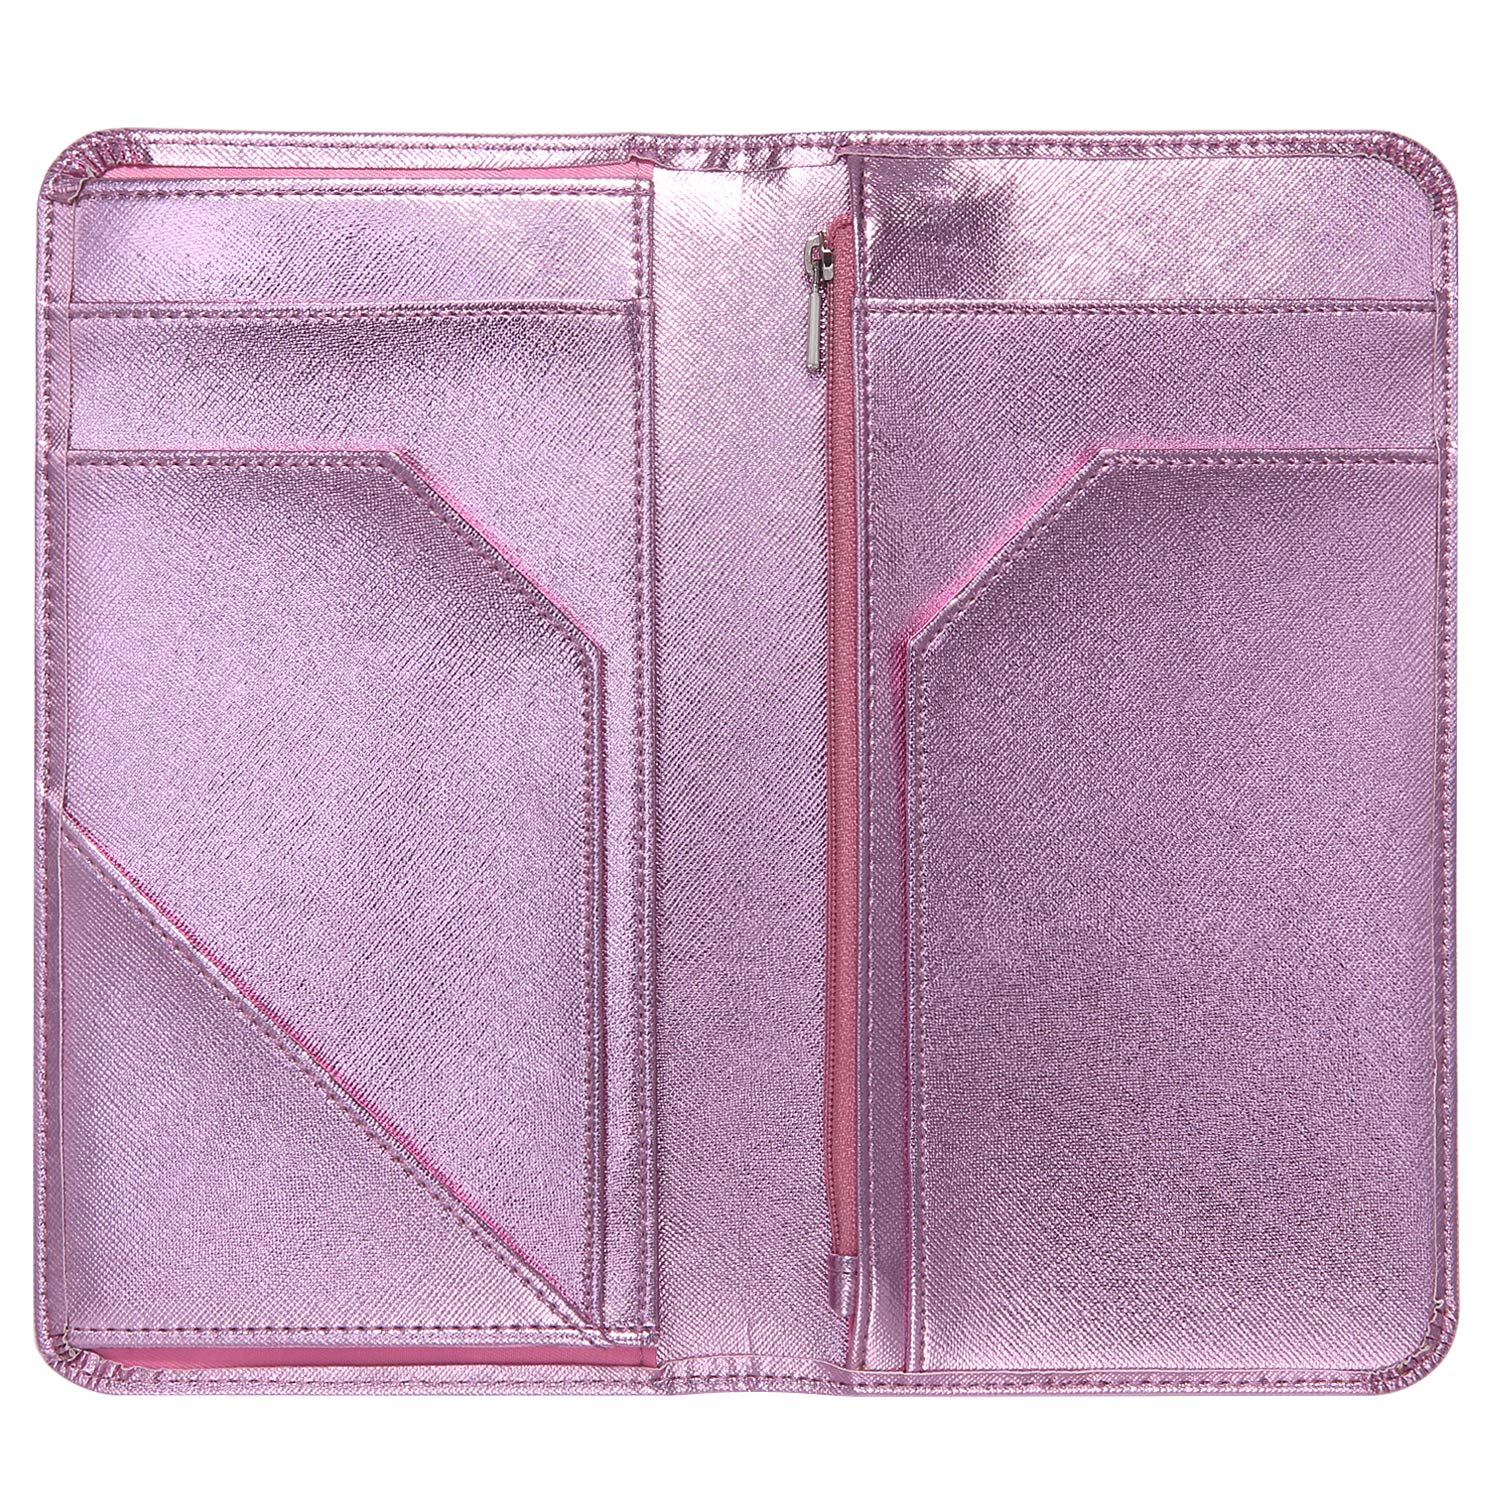 Mymazn Pink Server Book for Waitress Book with Zipper Pocket Server Wallet with Money Pocket and Zipper Pouch Restaurant Waitstaff Organizer, Guest Check Book Holder Money Pocket Fit Server Apron by Mymazn (Image #5)